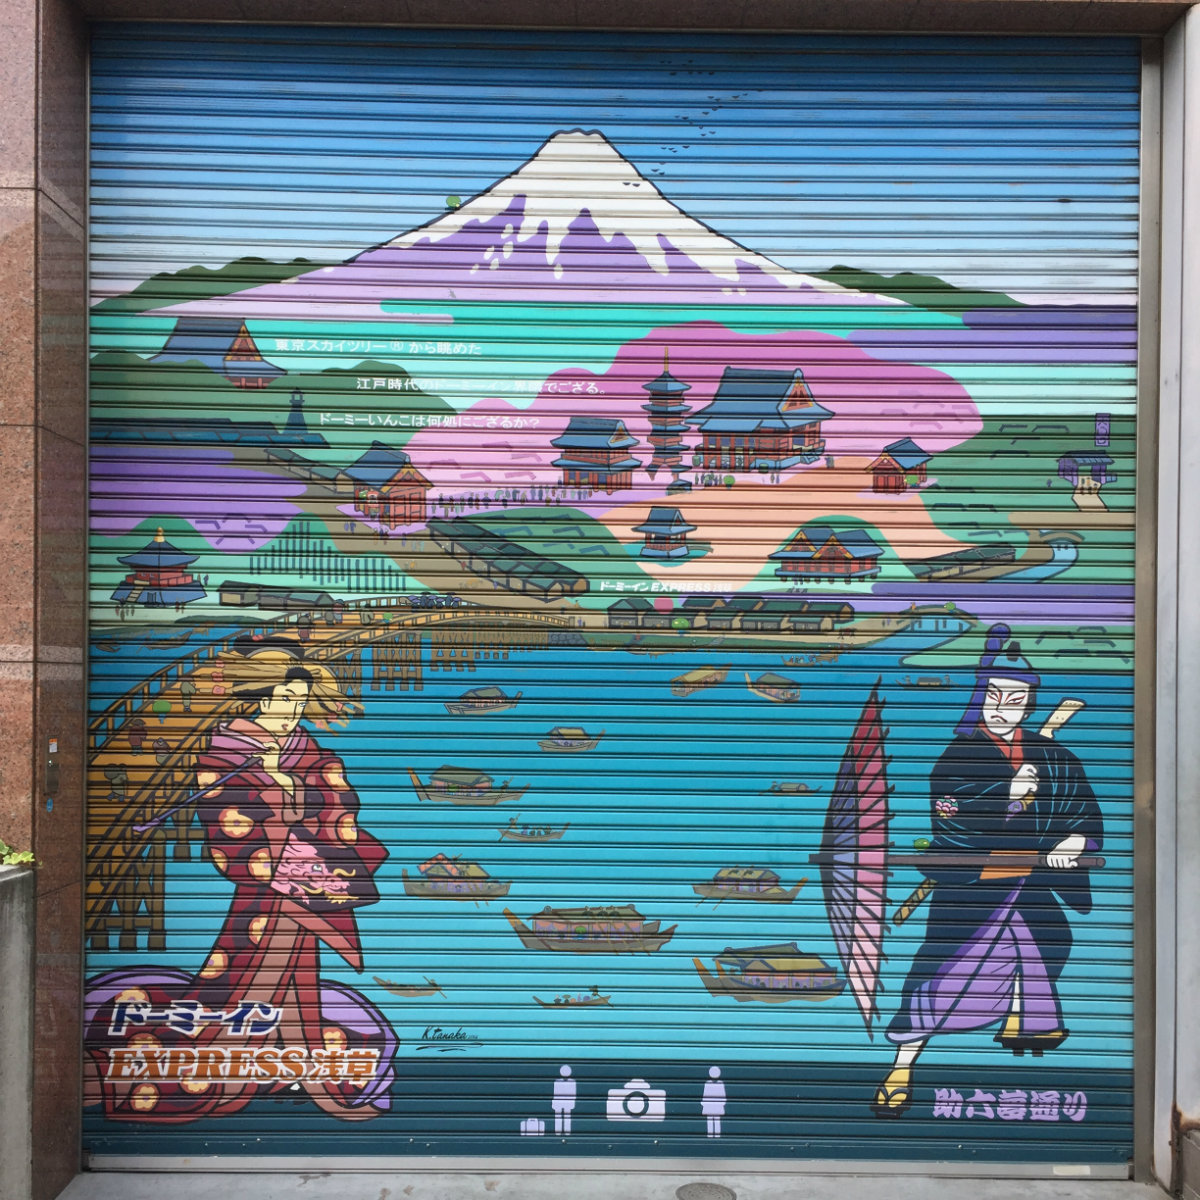 A painted garage door in Asakusa